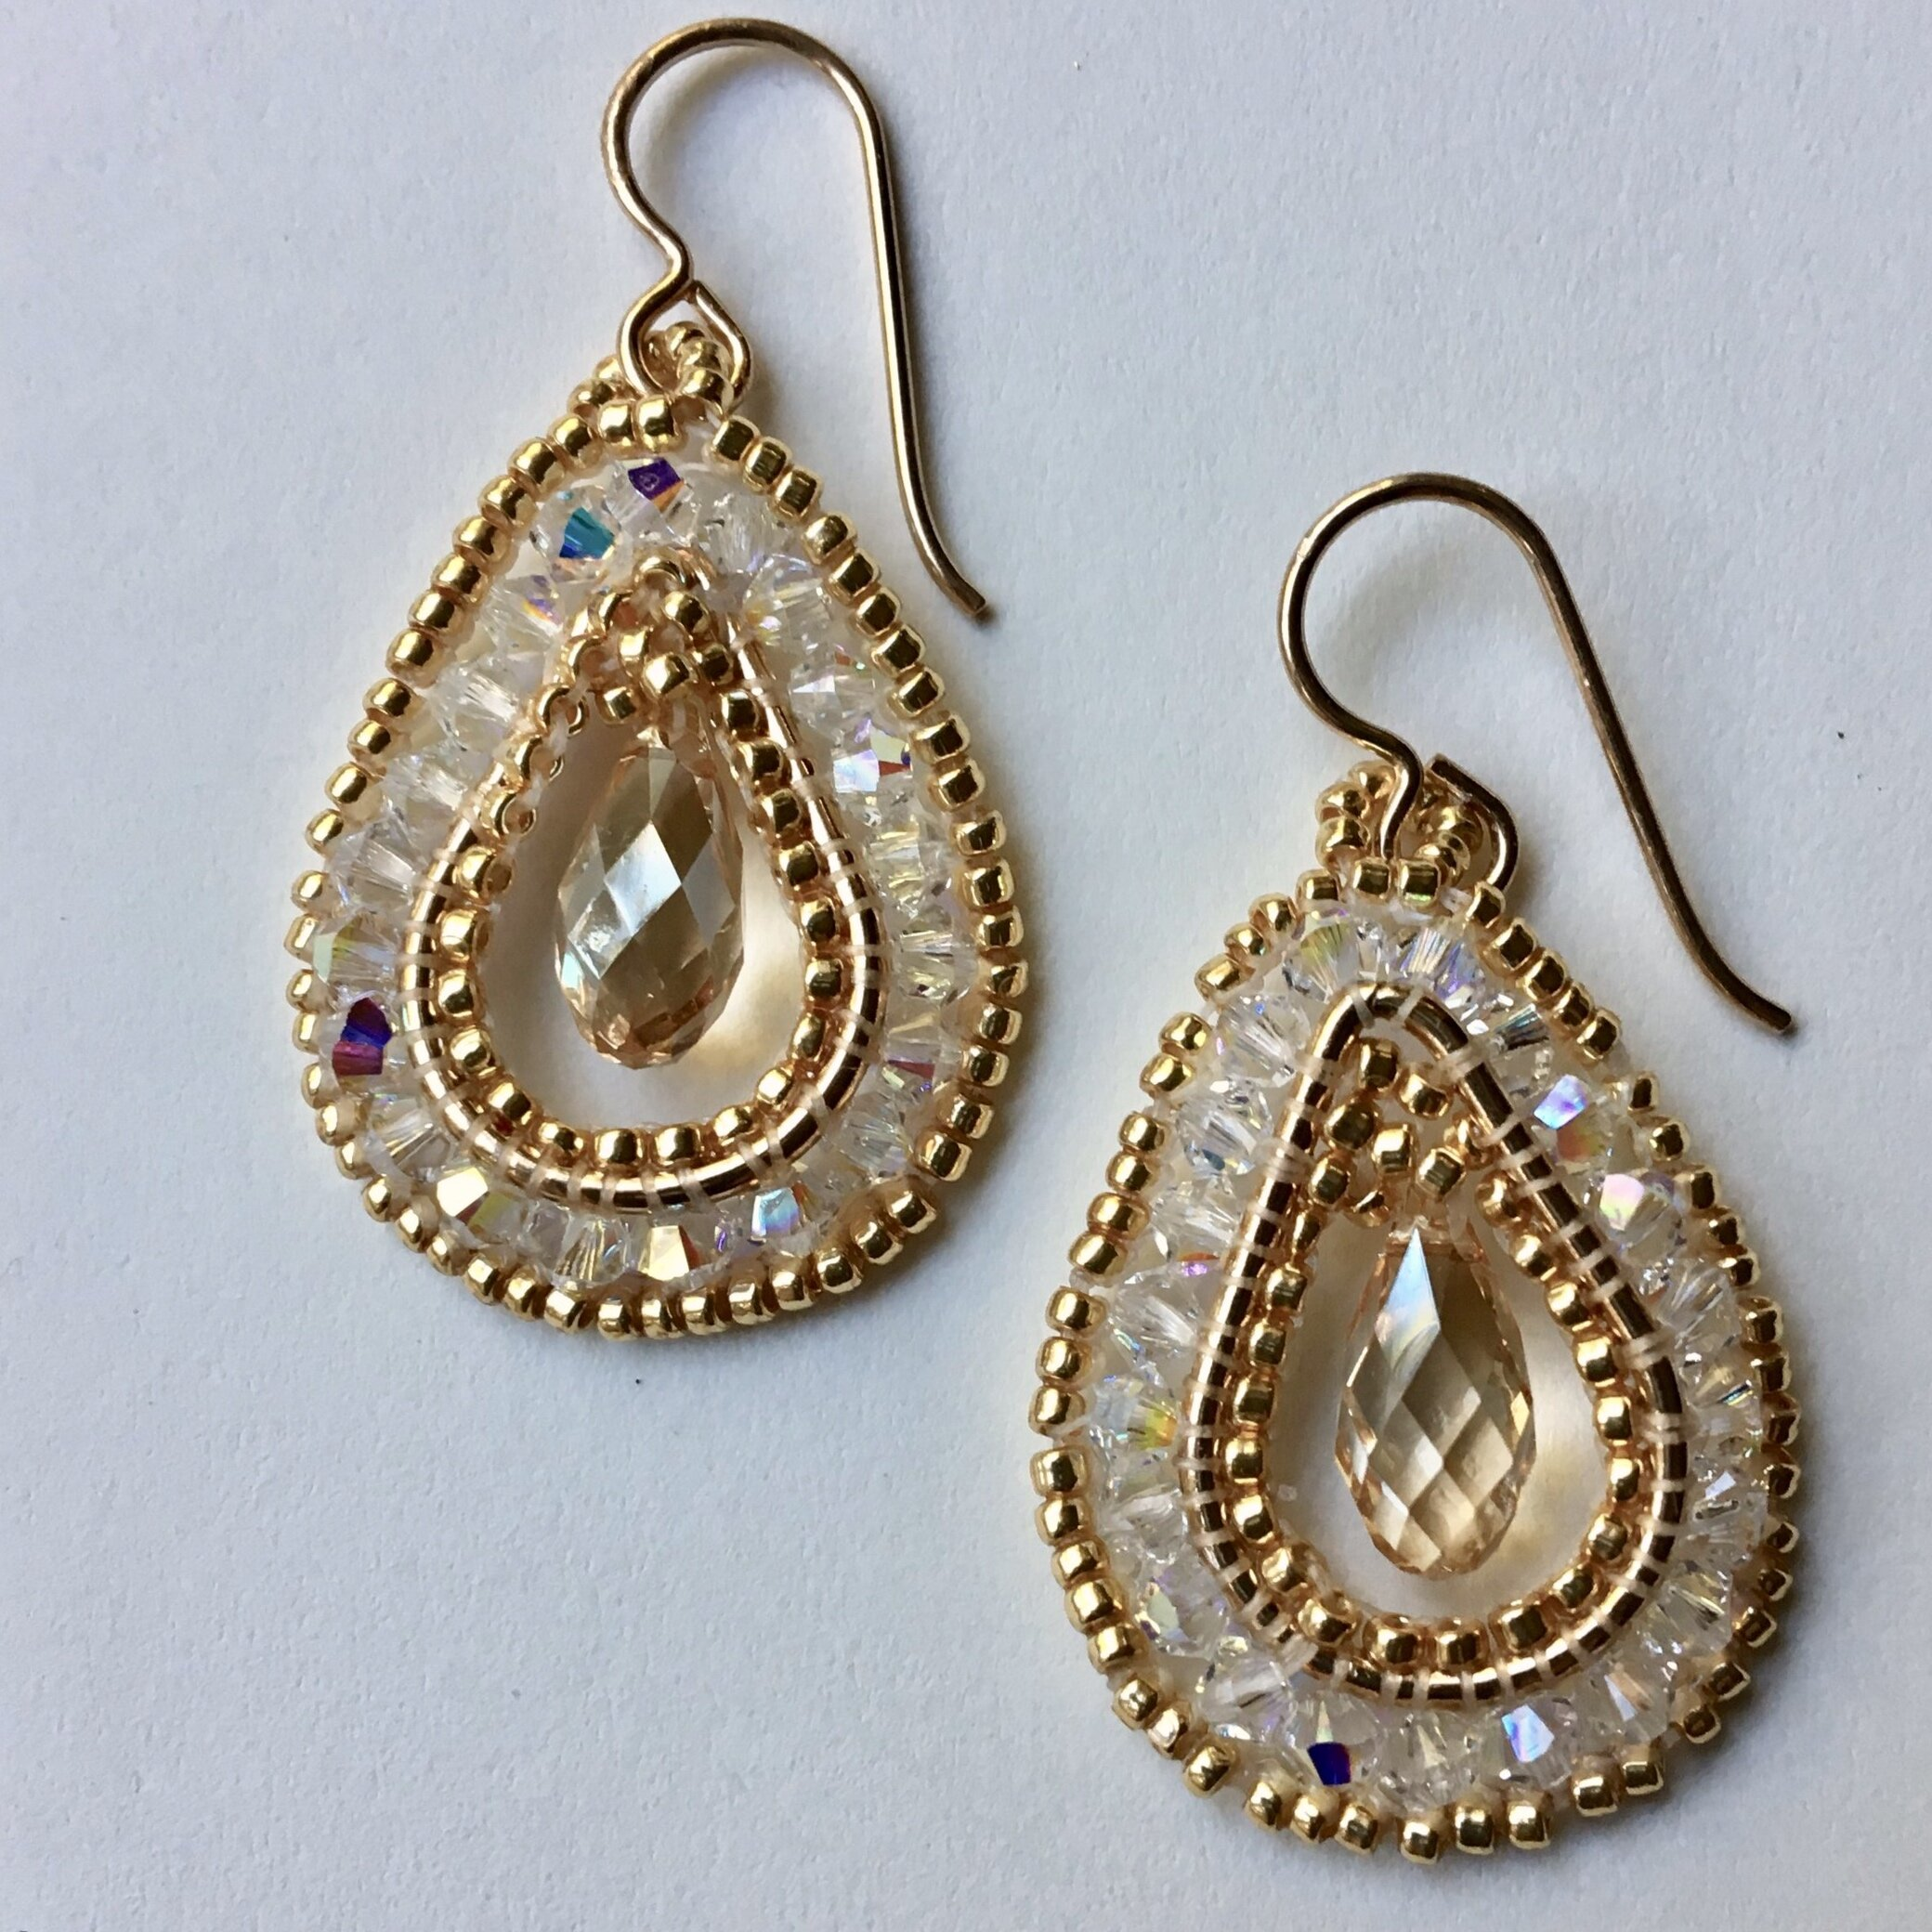 NEW! Gold and Crystal Teardrop Earrings